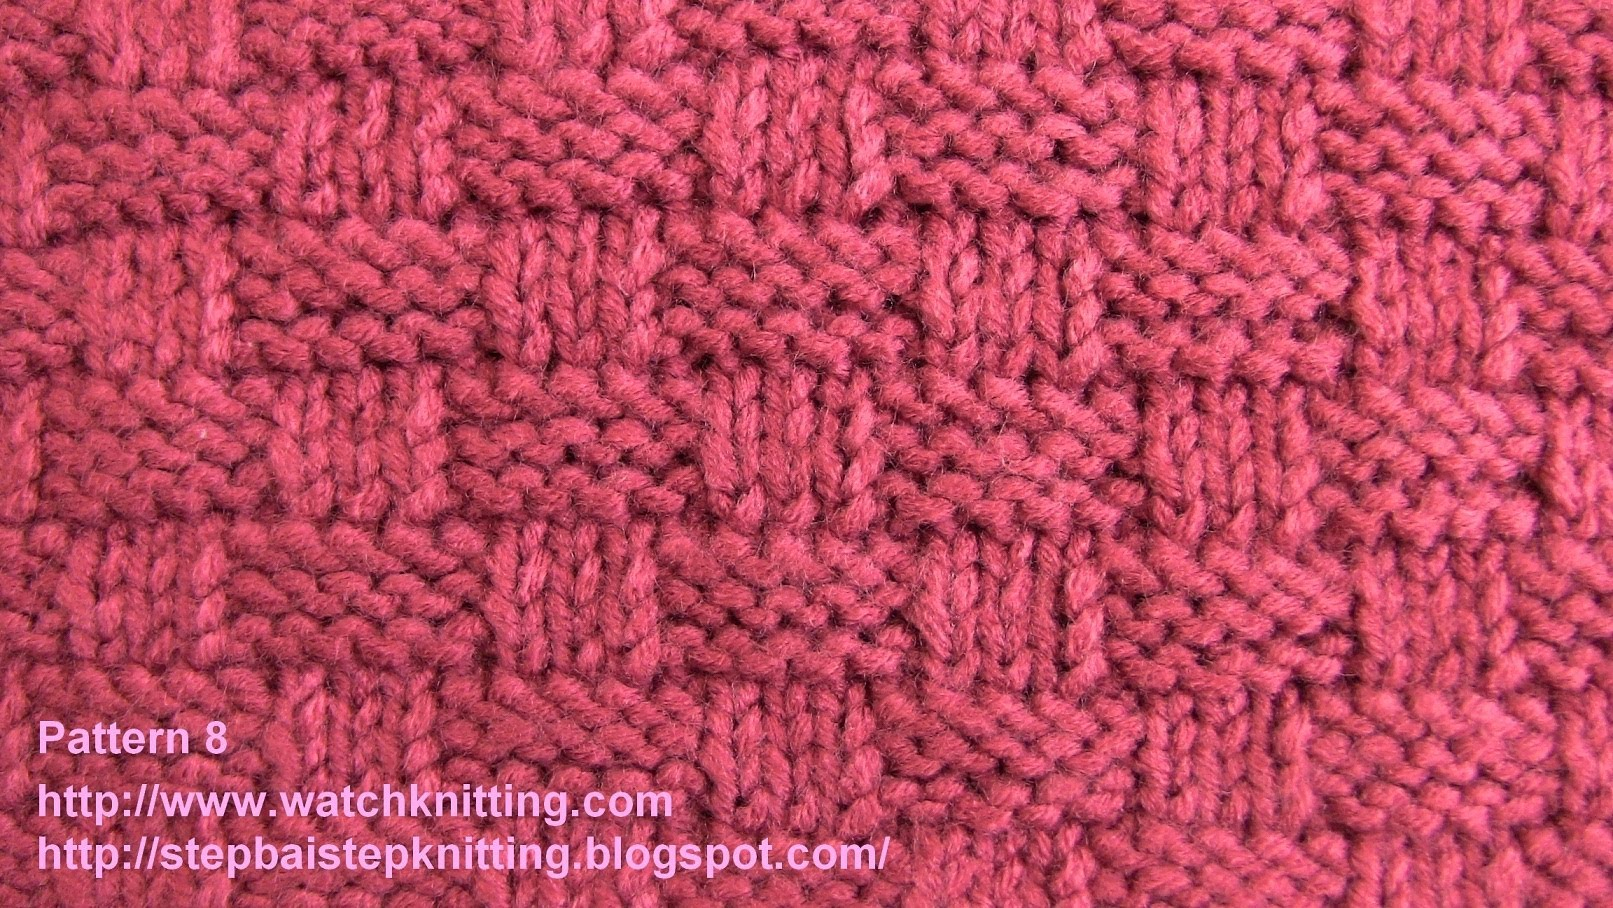 Knitting Patterns Designs Starting Off With Simple Knitting Patterns Thefashiontamer